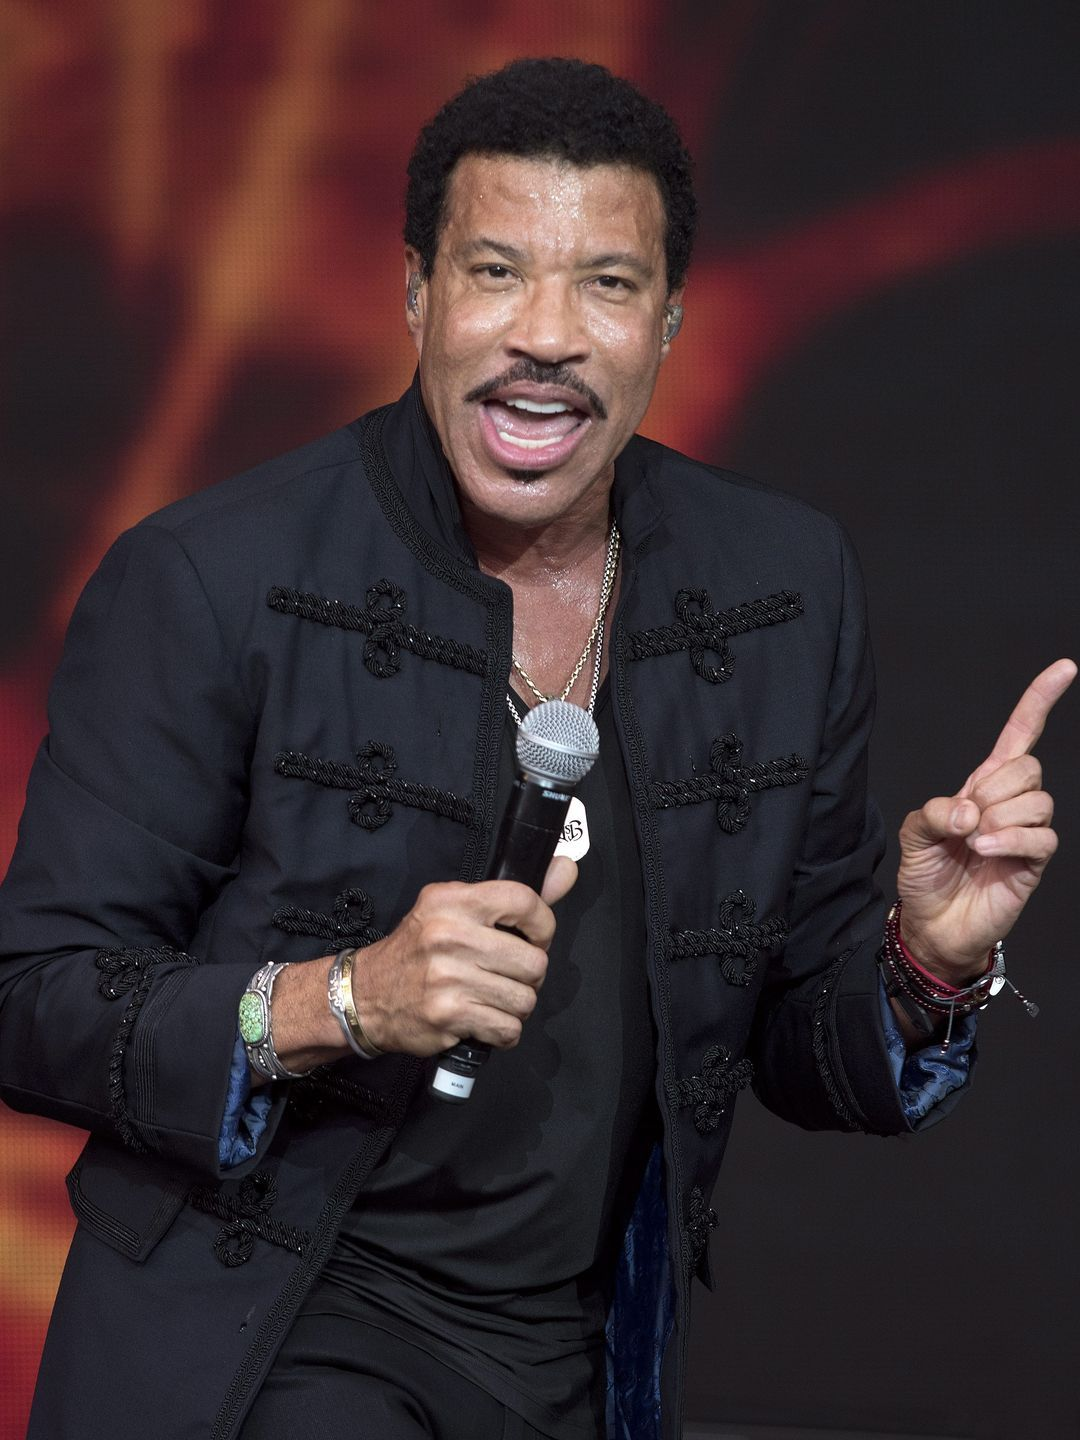 Singer Lionel Richie performs at the Glastonbury Festival.  HANNAH MCKAY, EPA